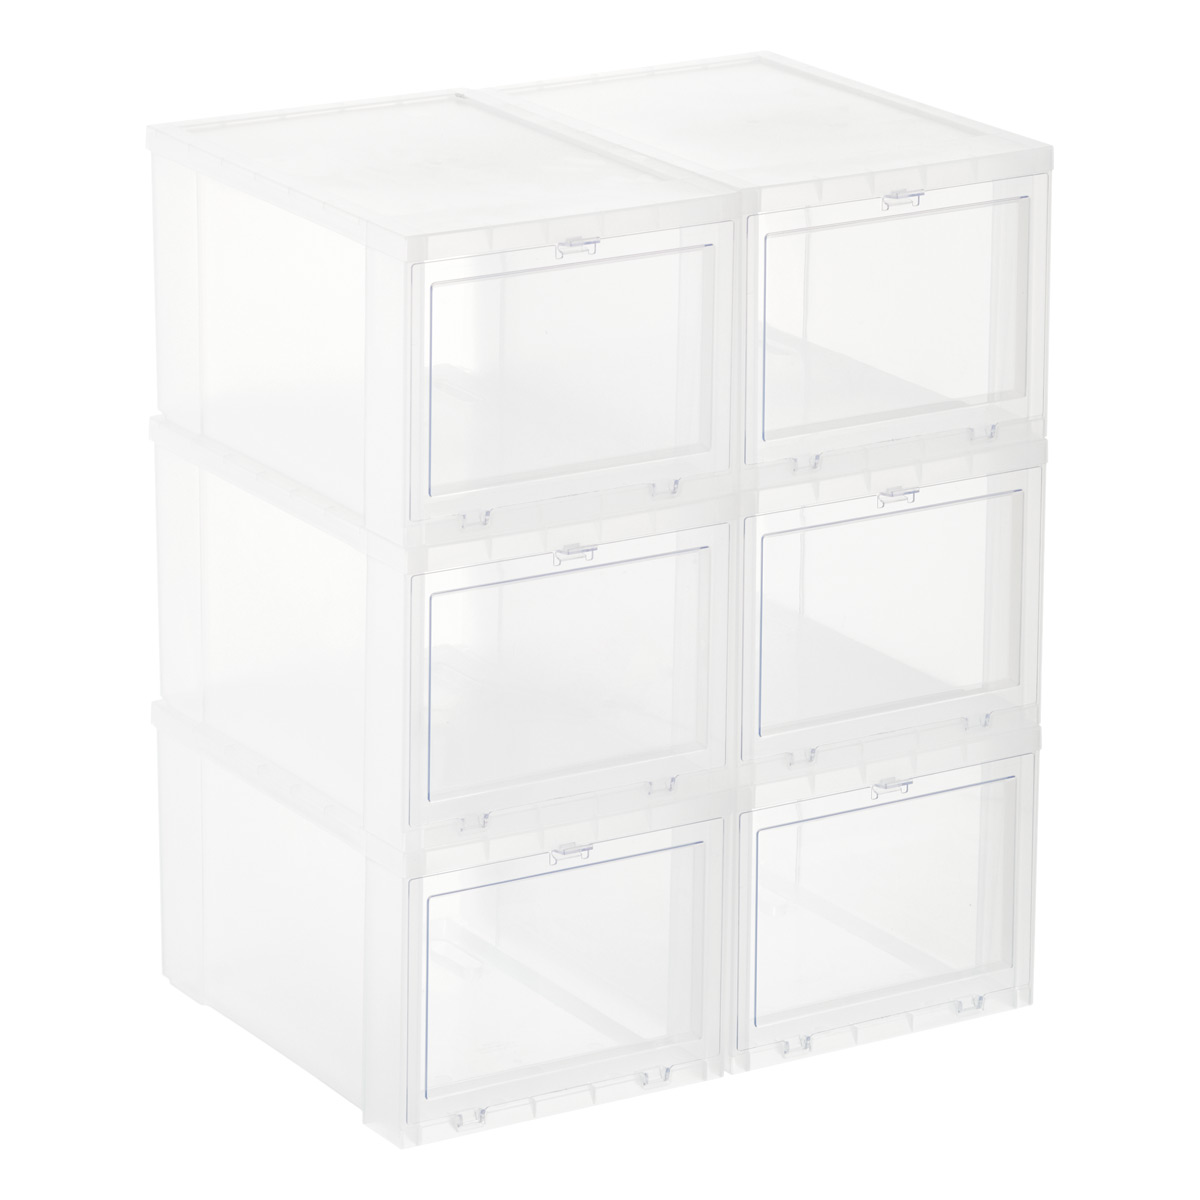 Drop-Front Shoe Boxes - Sneaker Storage Boxes | The Container Store